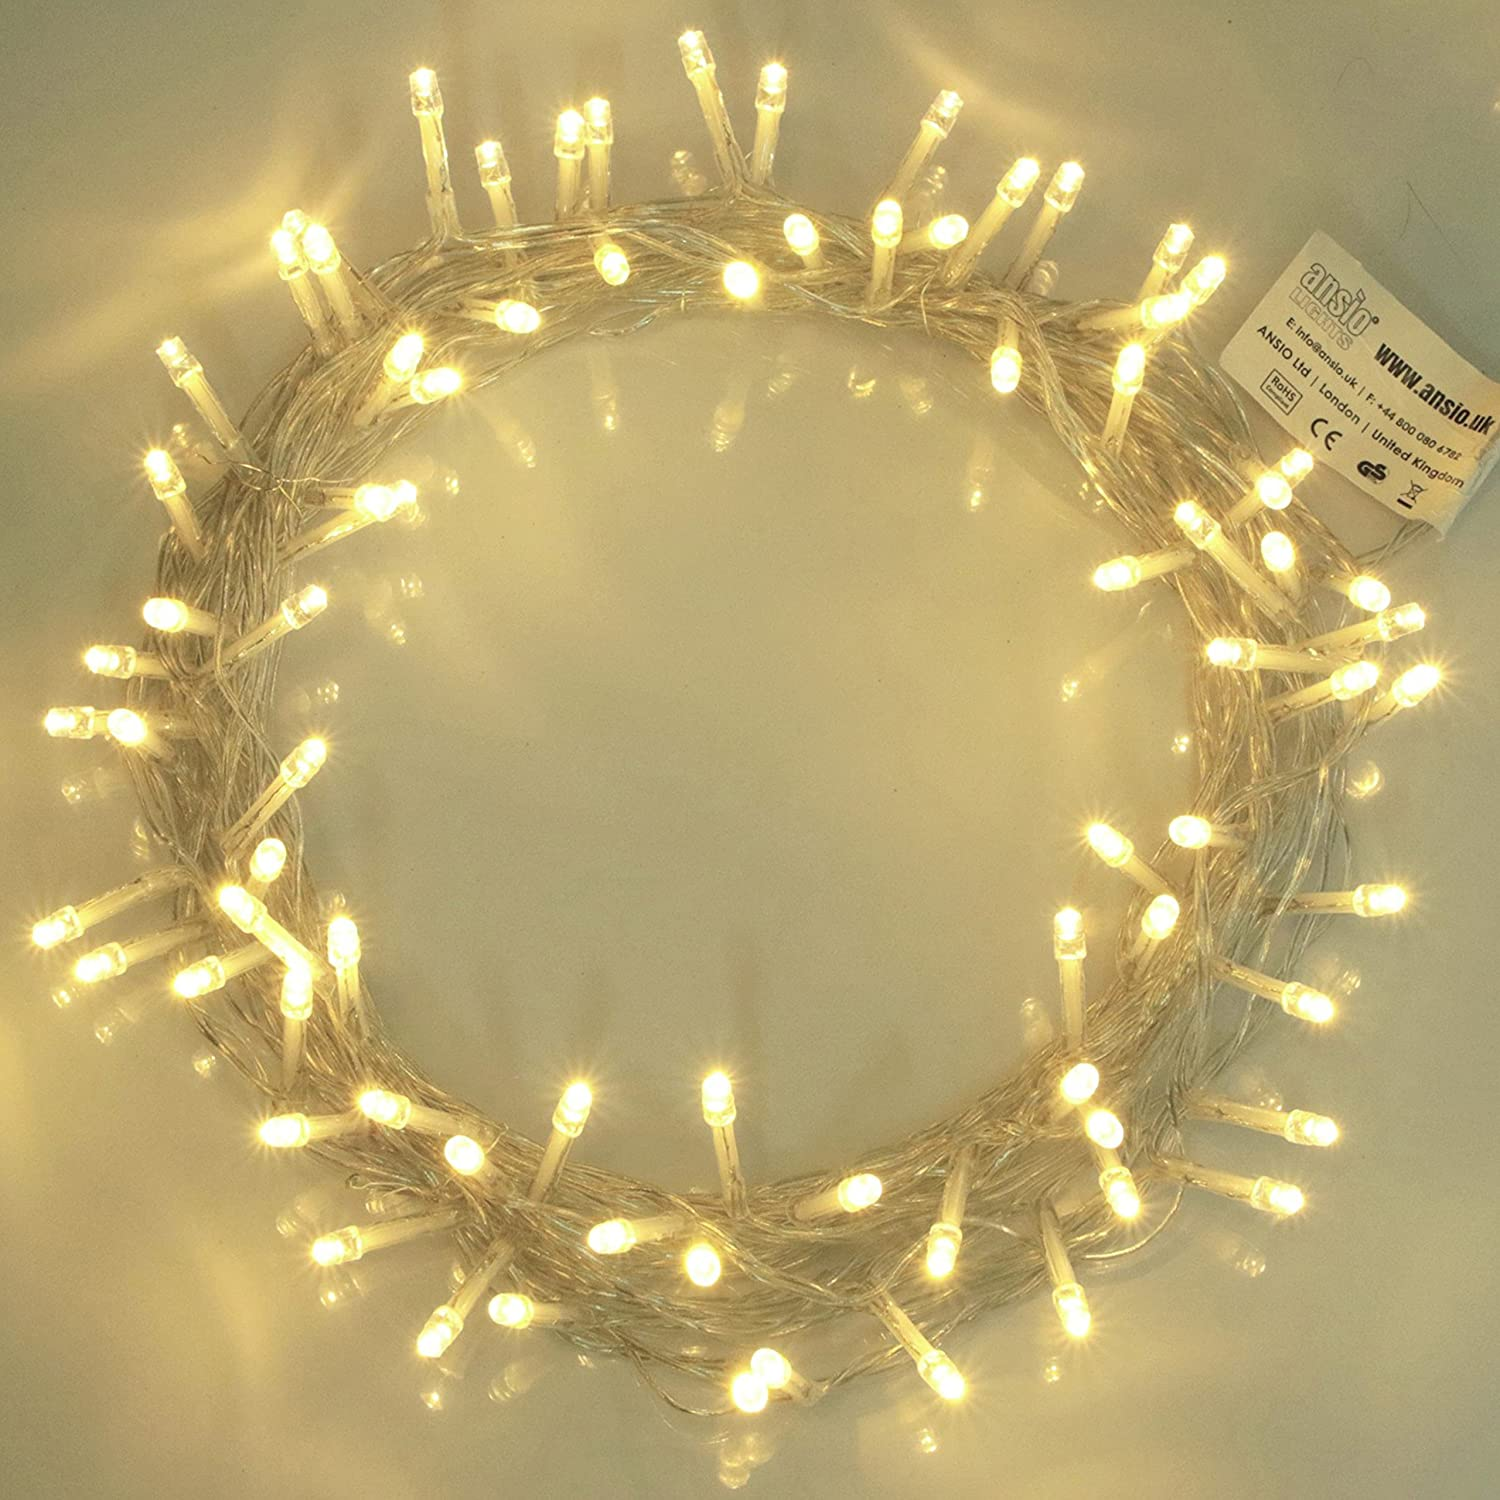 Fairy Lights 100 LED Warm White String Lights 10m of Clear Cable ...